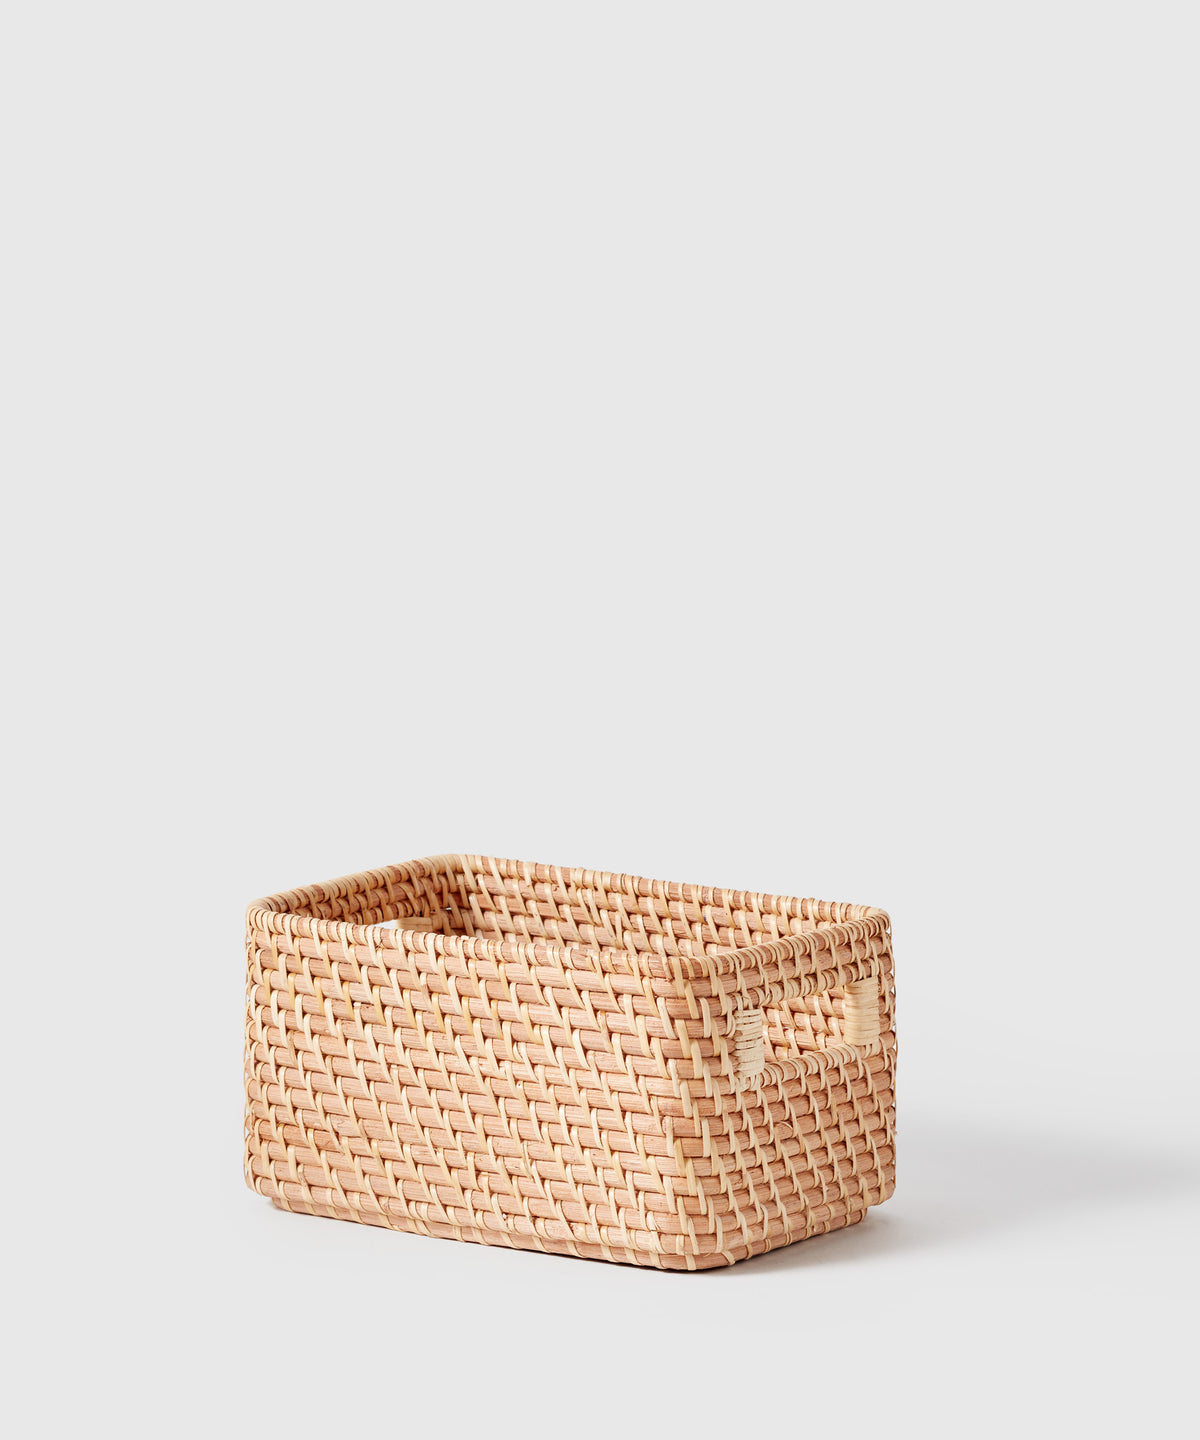 Small Woven Rattan Bin With Handles